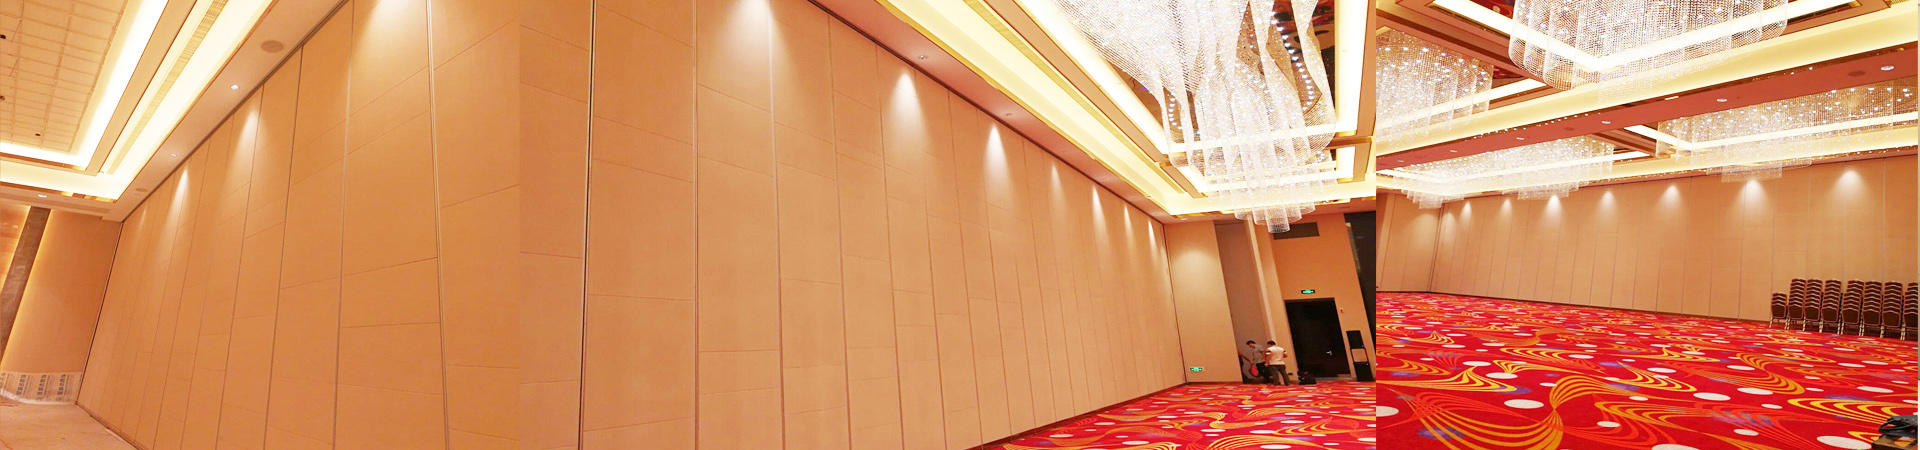 Professional meeting room movable partition wall factory in china -- Ebunge